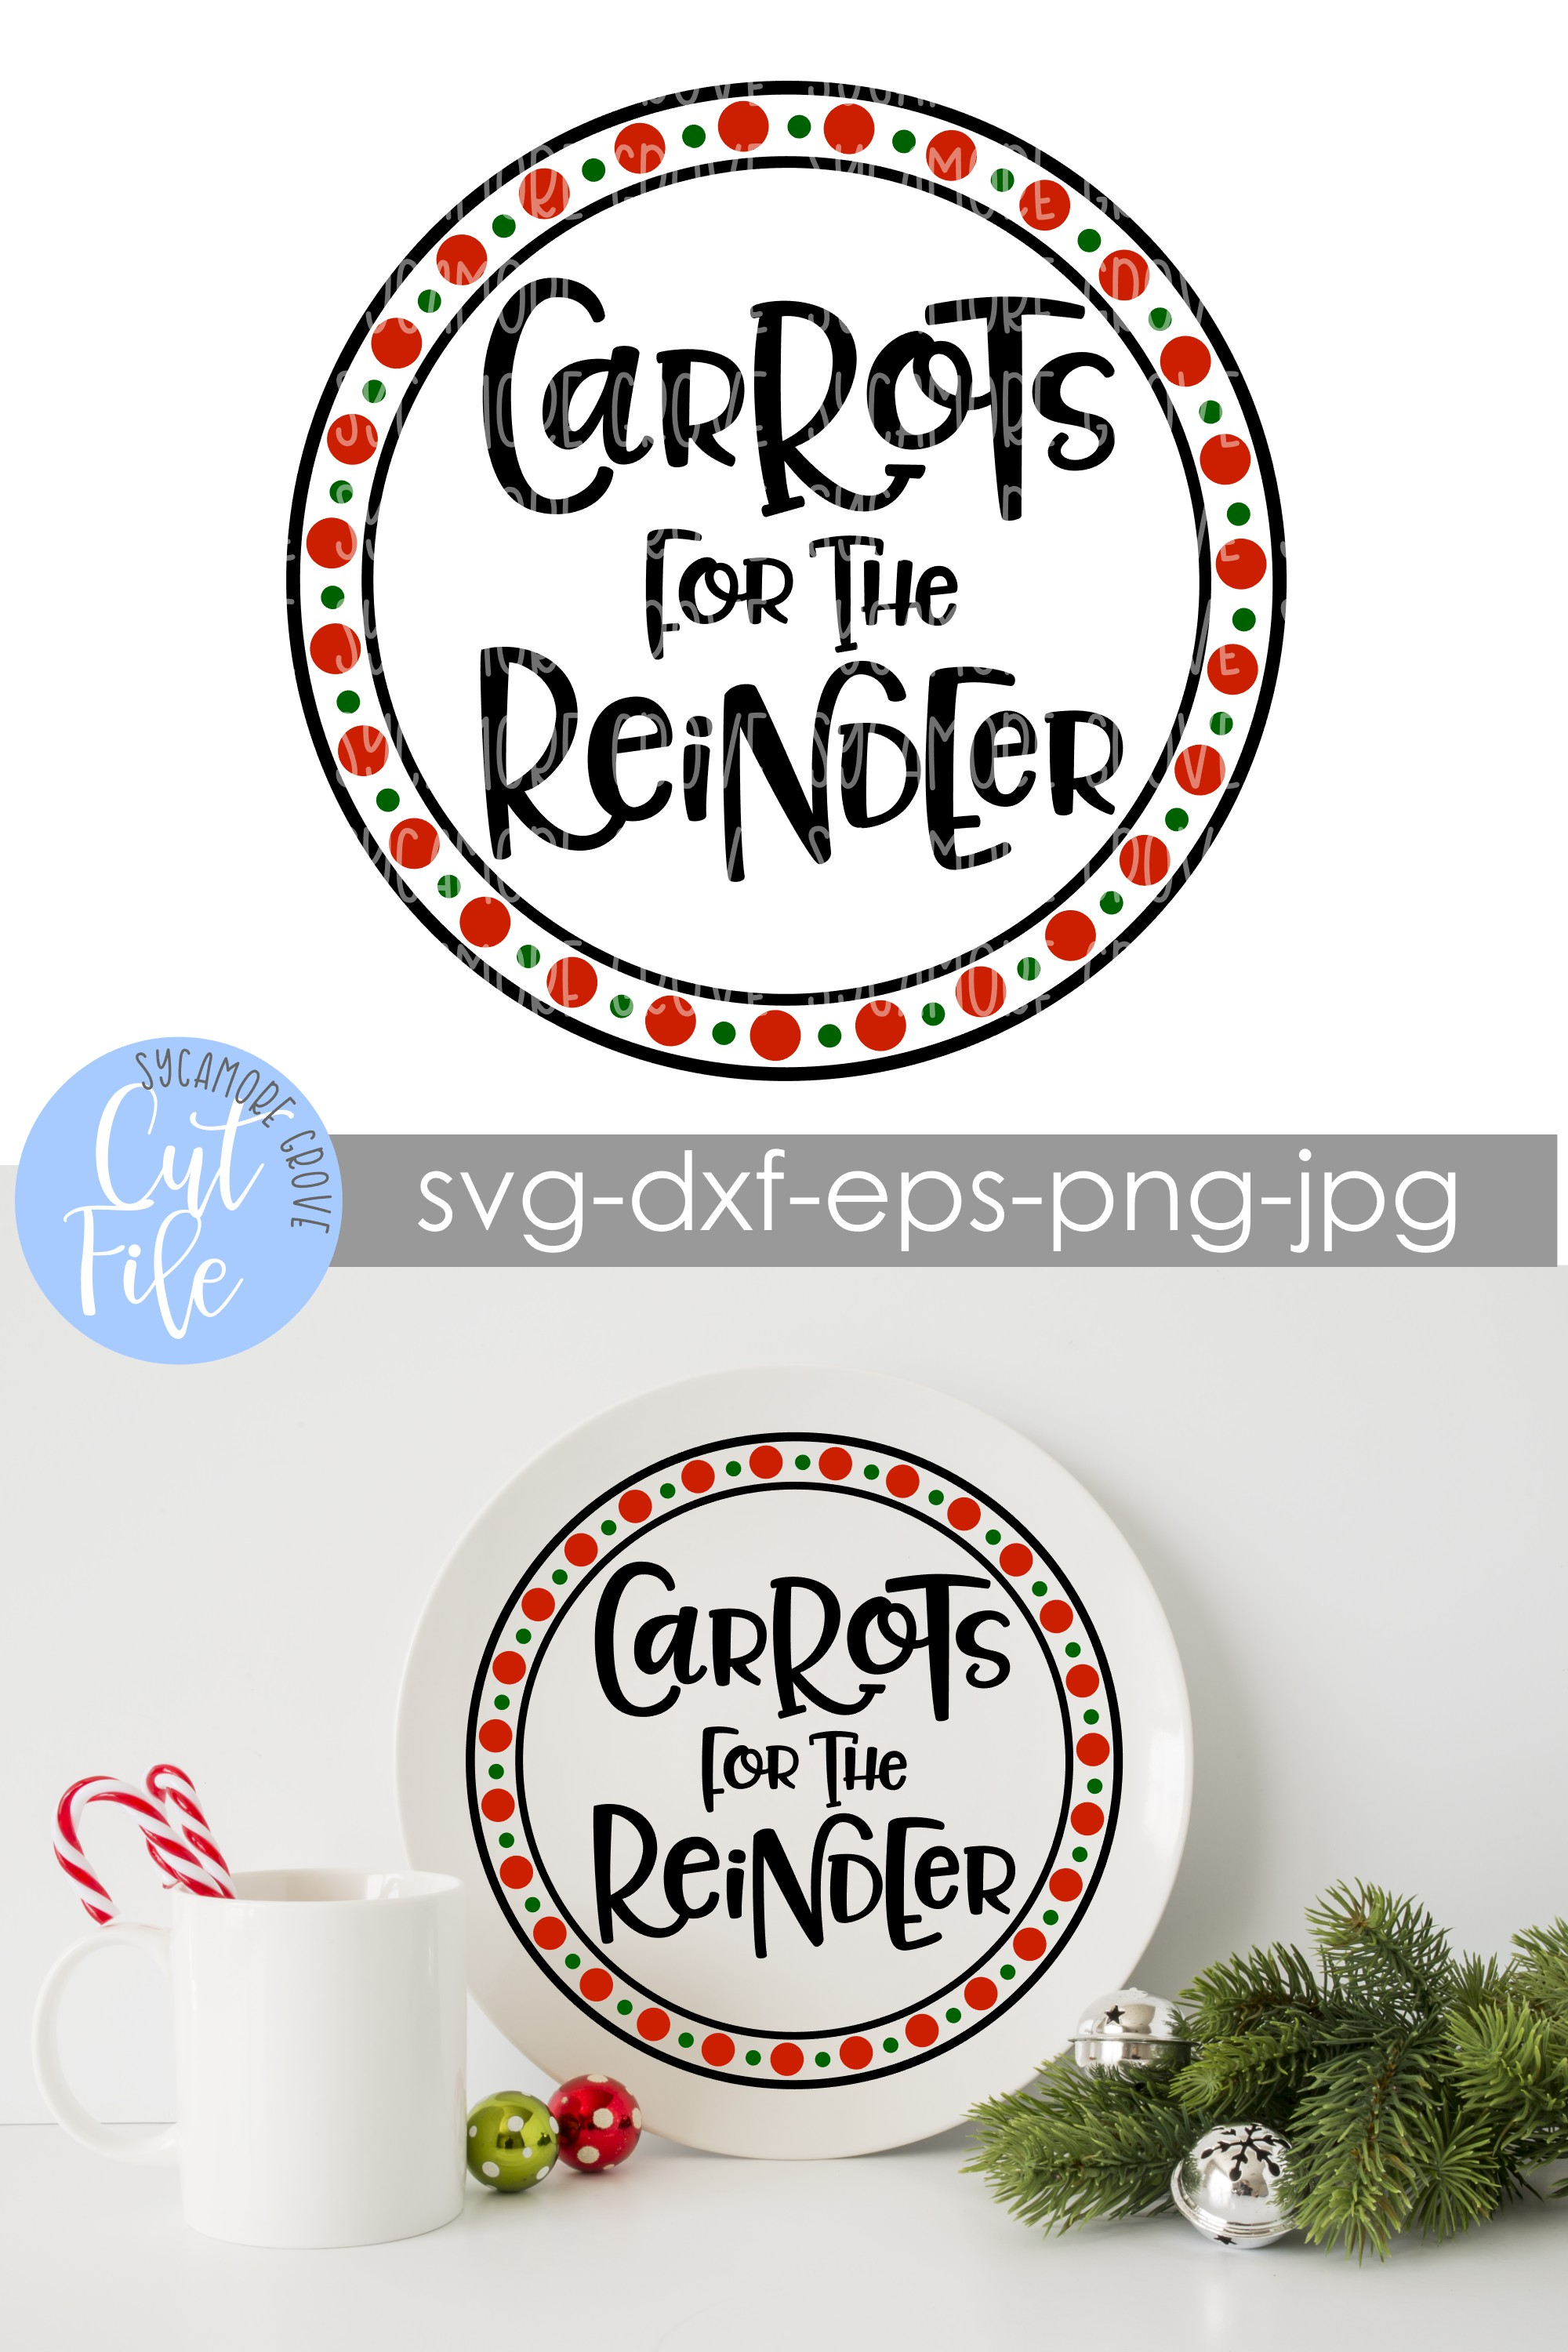 Carrots for the Reindeer | Christmas SVG example image 4